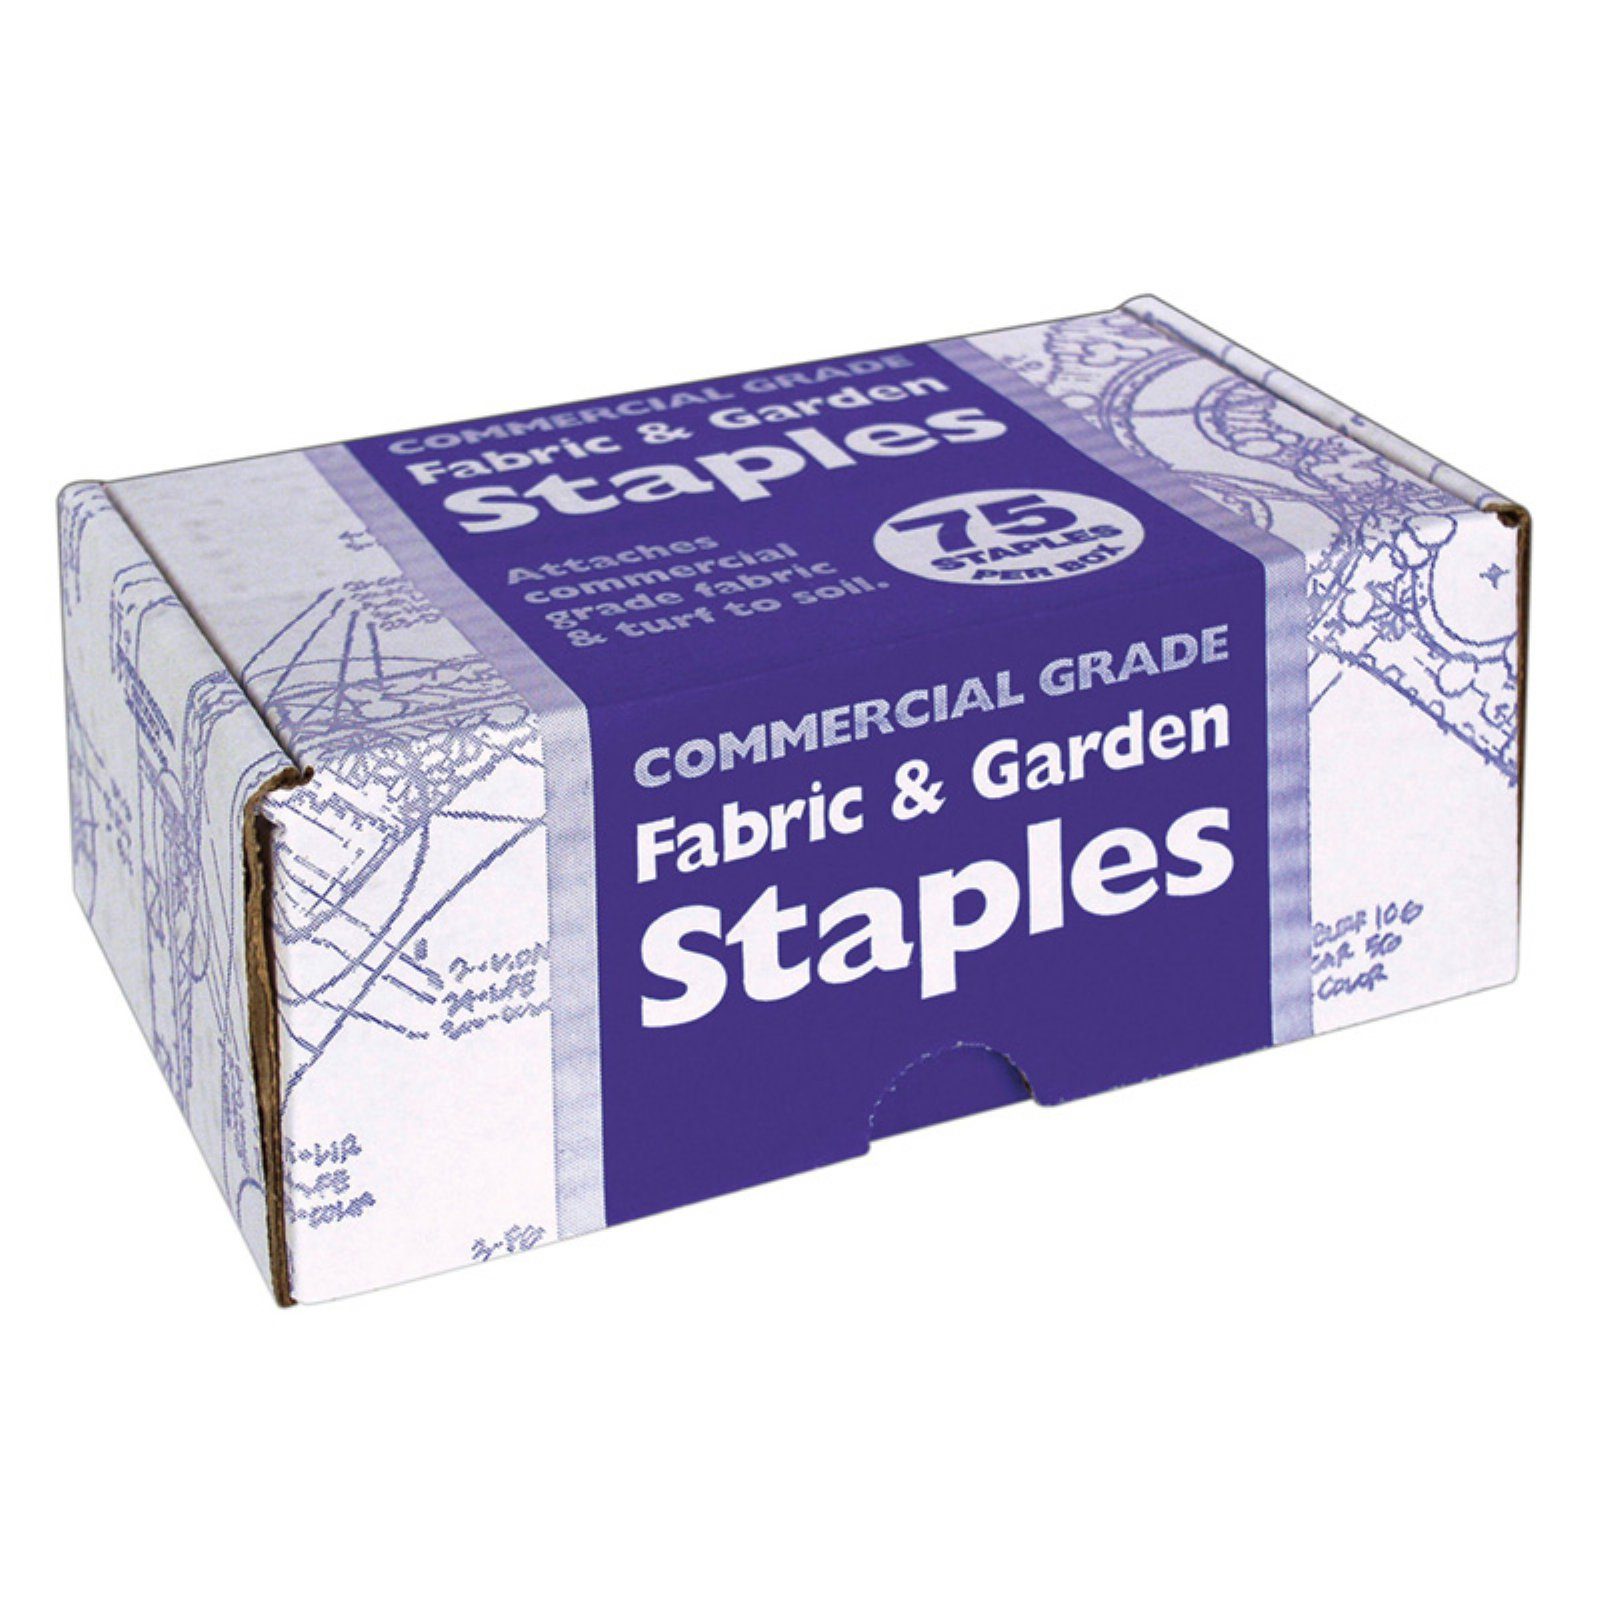 Easy Gardener 815 Fabric & Garden Staples 75 Count